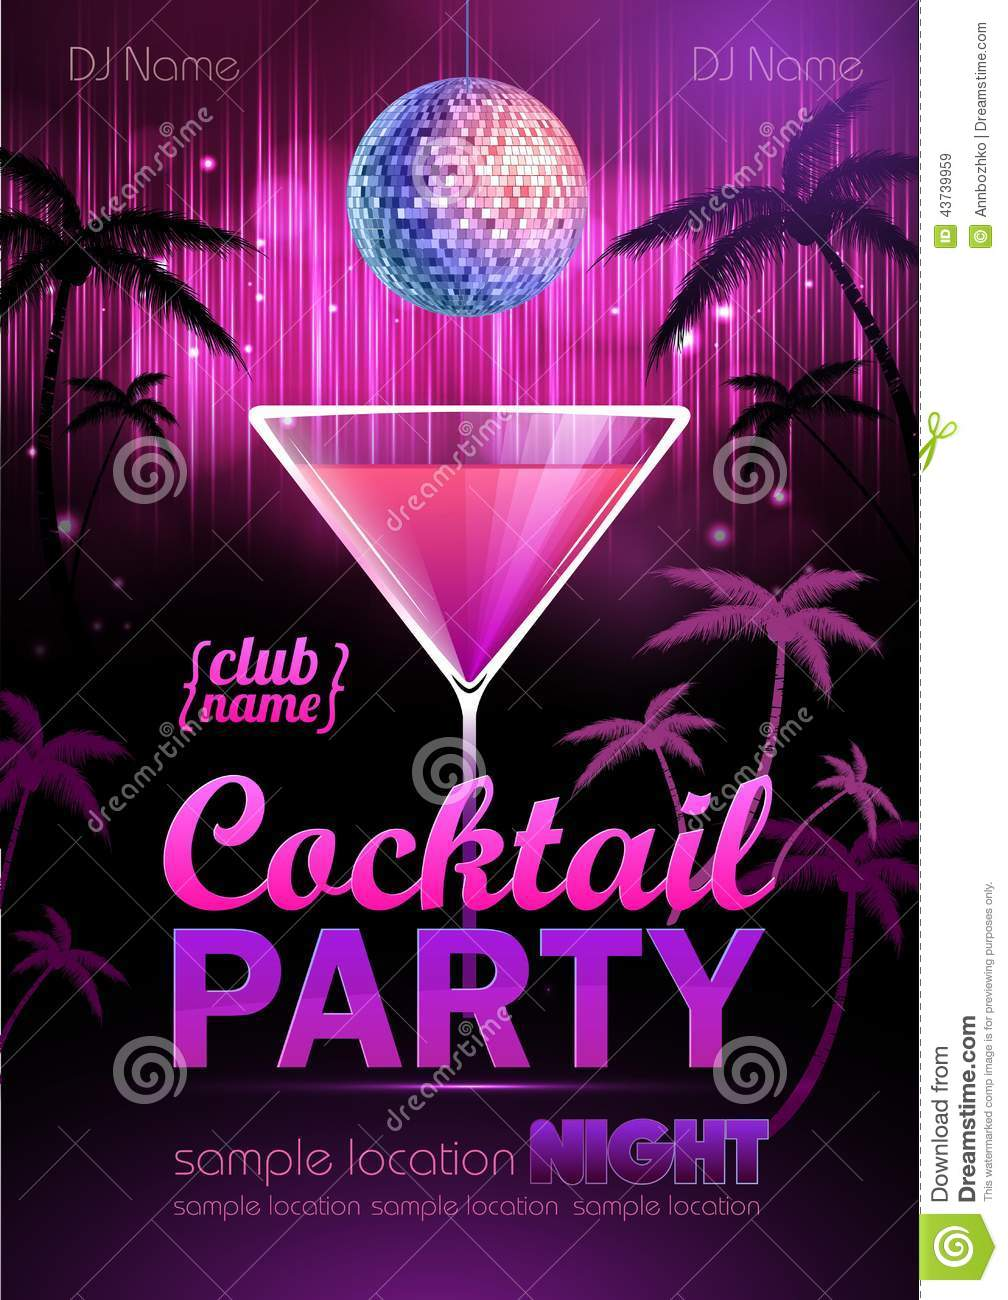 cocktail party poster stock vector  illustration of club